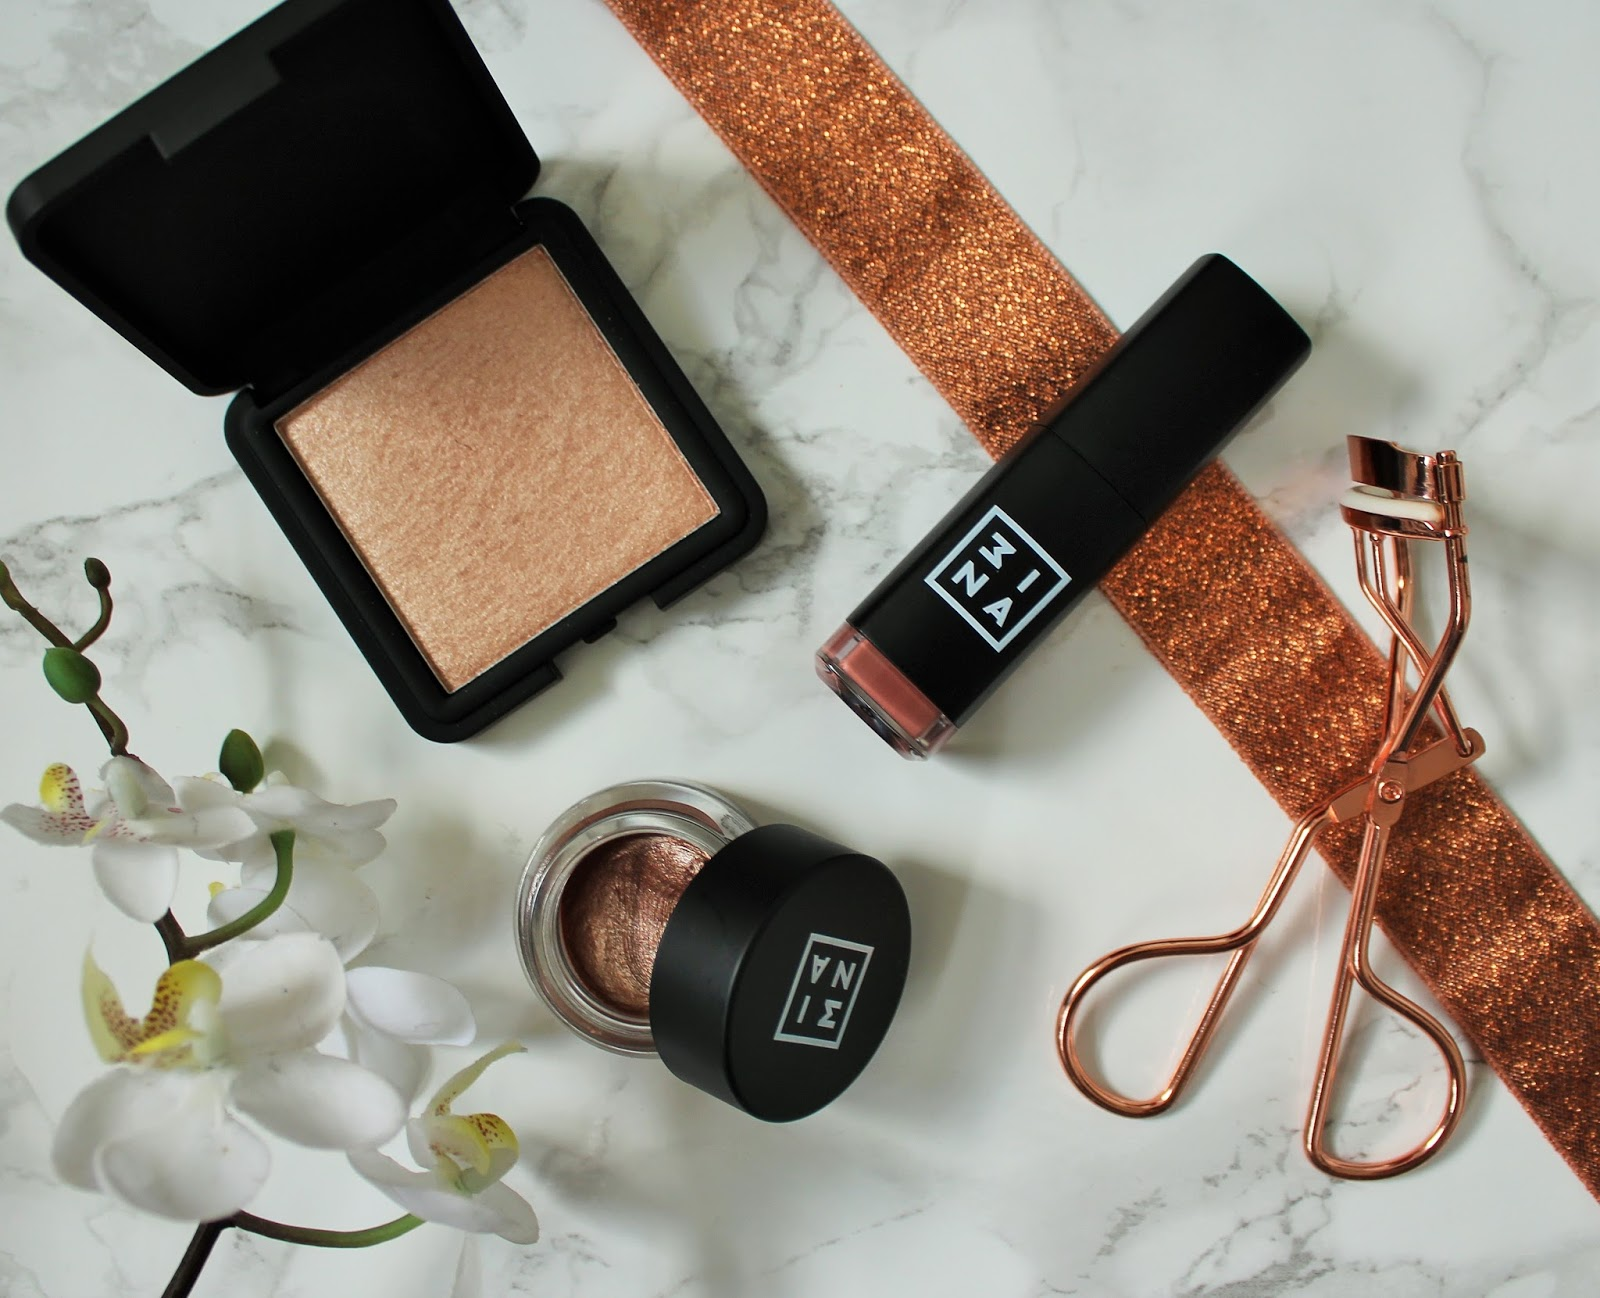 3ina bestselling makeup products